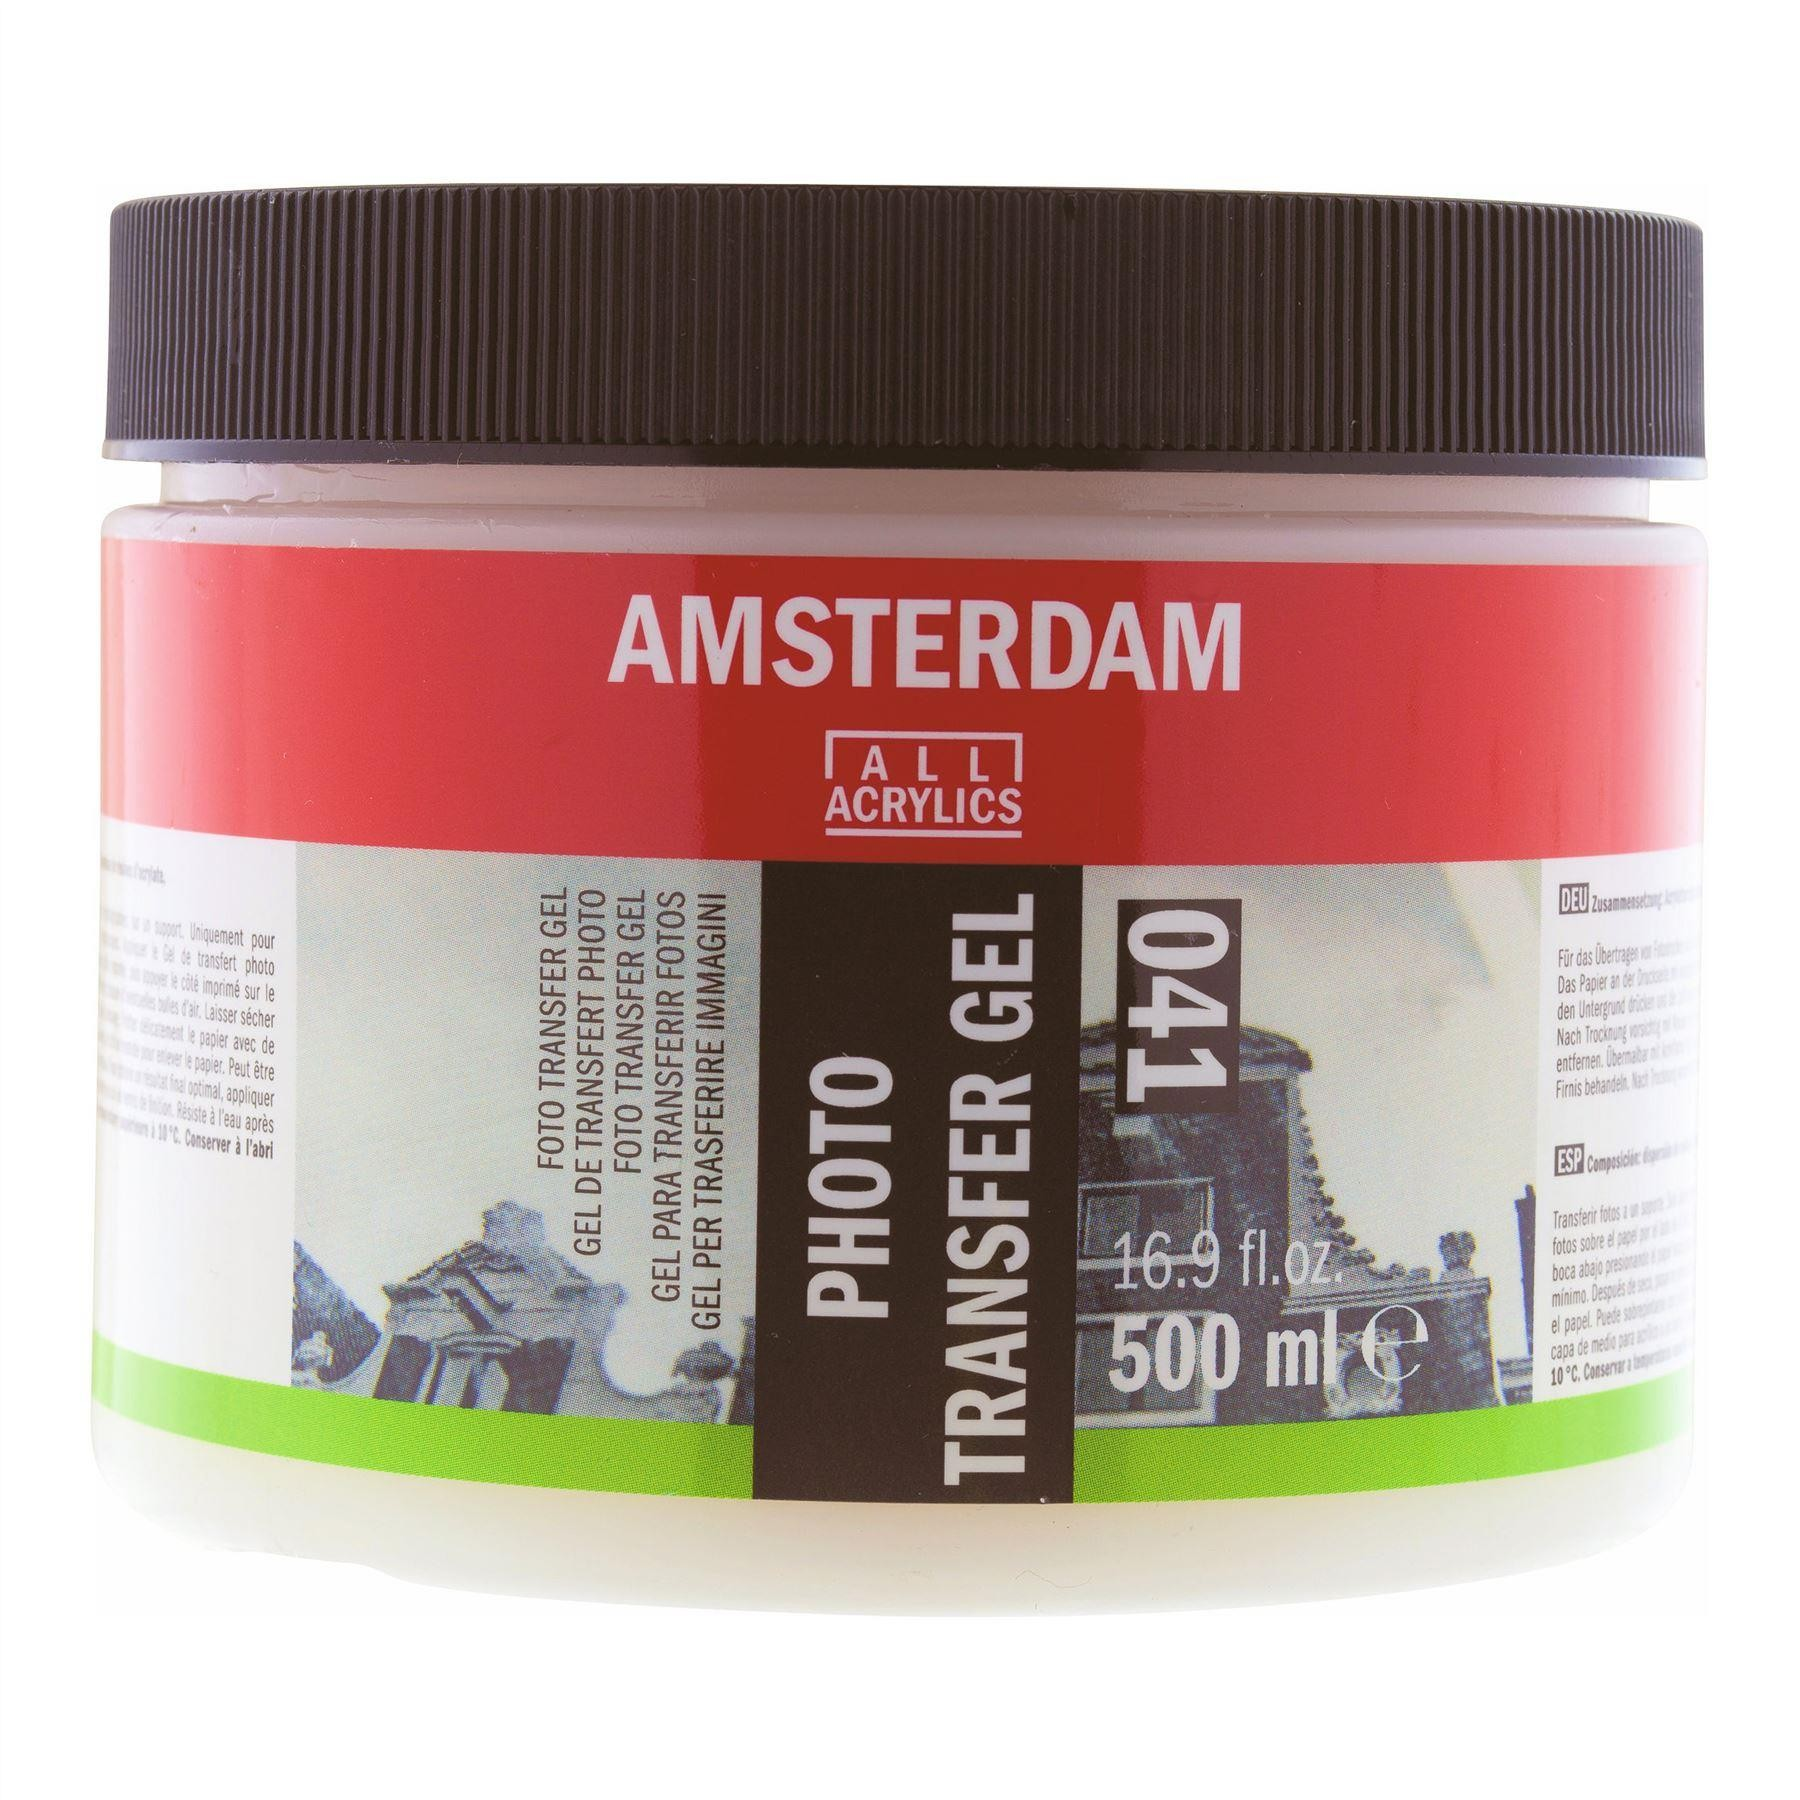 Royal Talens Amsterdam photo transfer gel 500ml